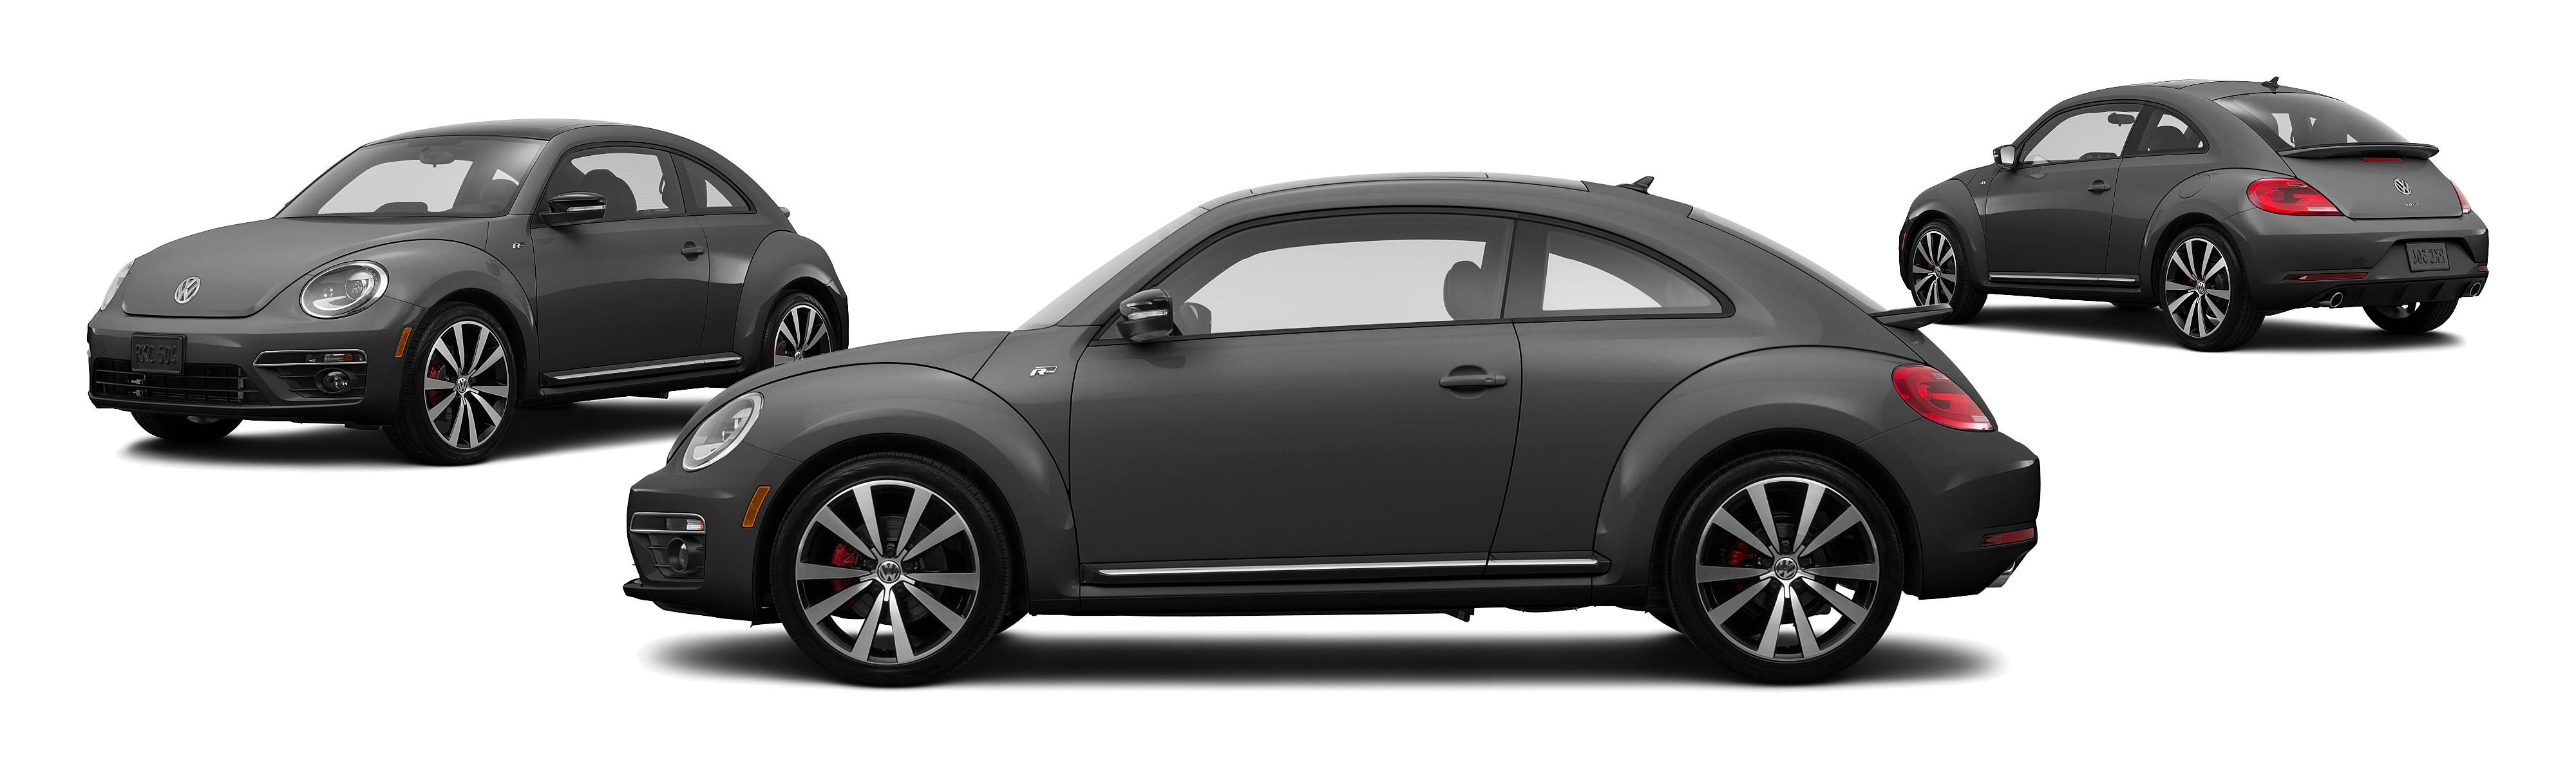 price r volkswagen photos beetle features line reviews turbo convertible photo